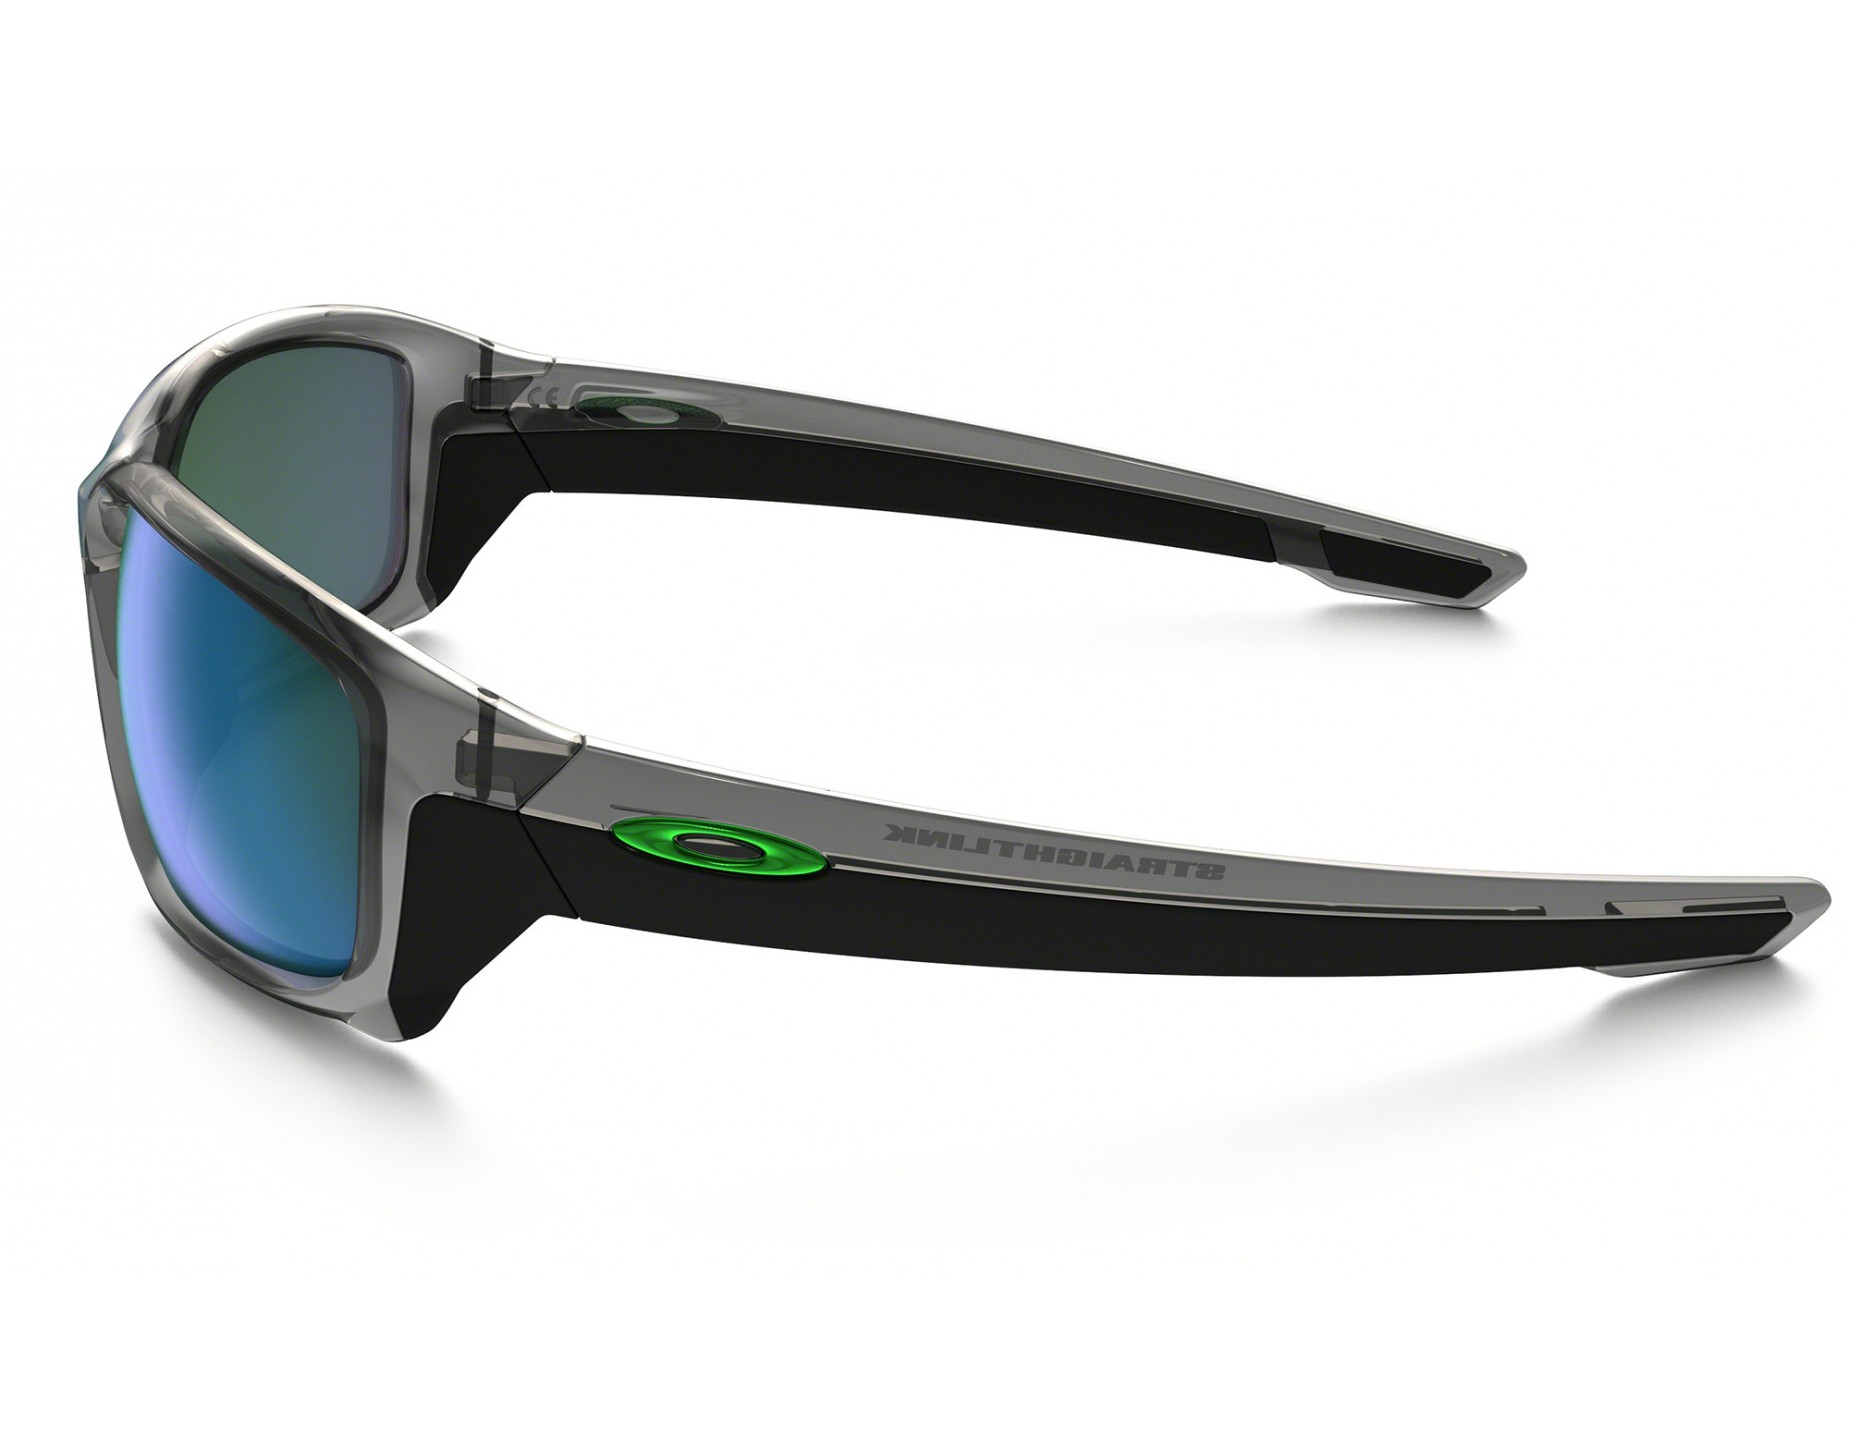 7e402f0f944 Oakley Deals Uk « Heritage Malta